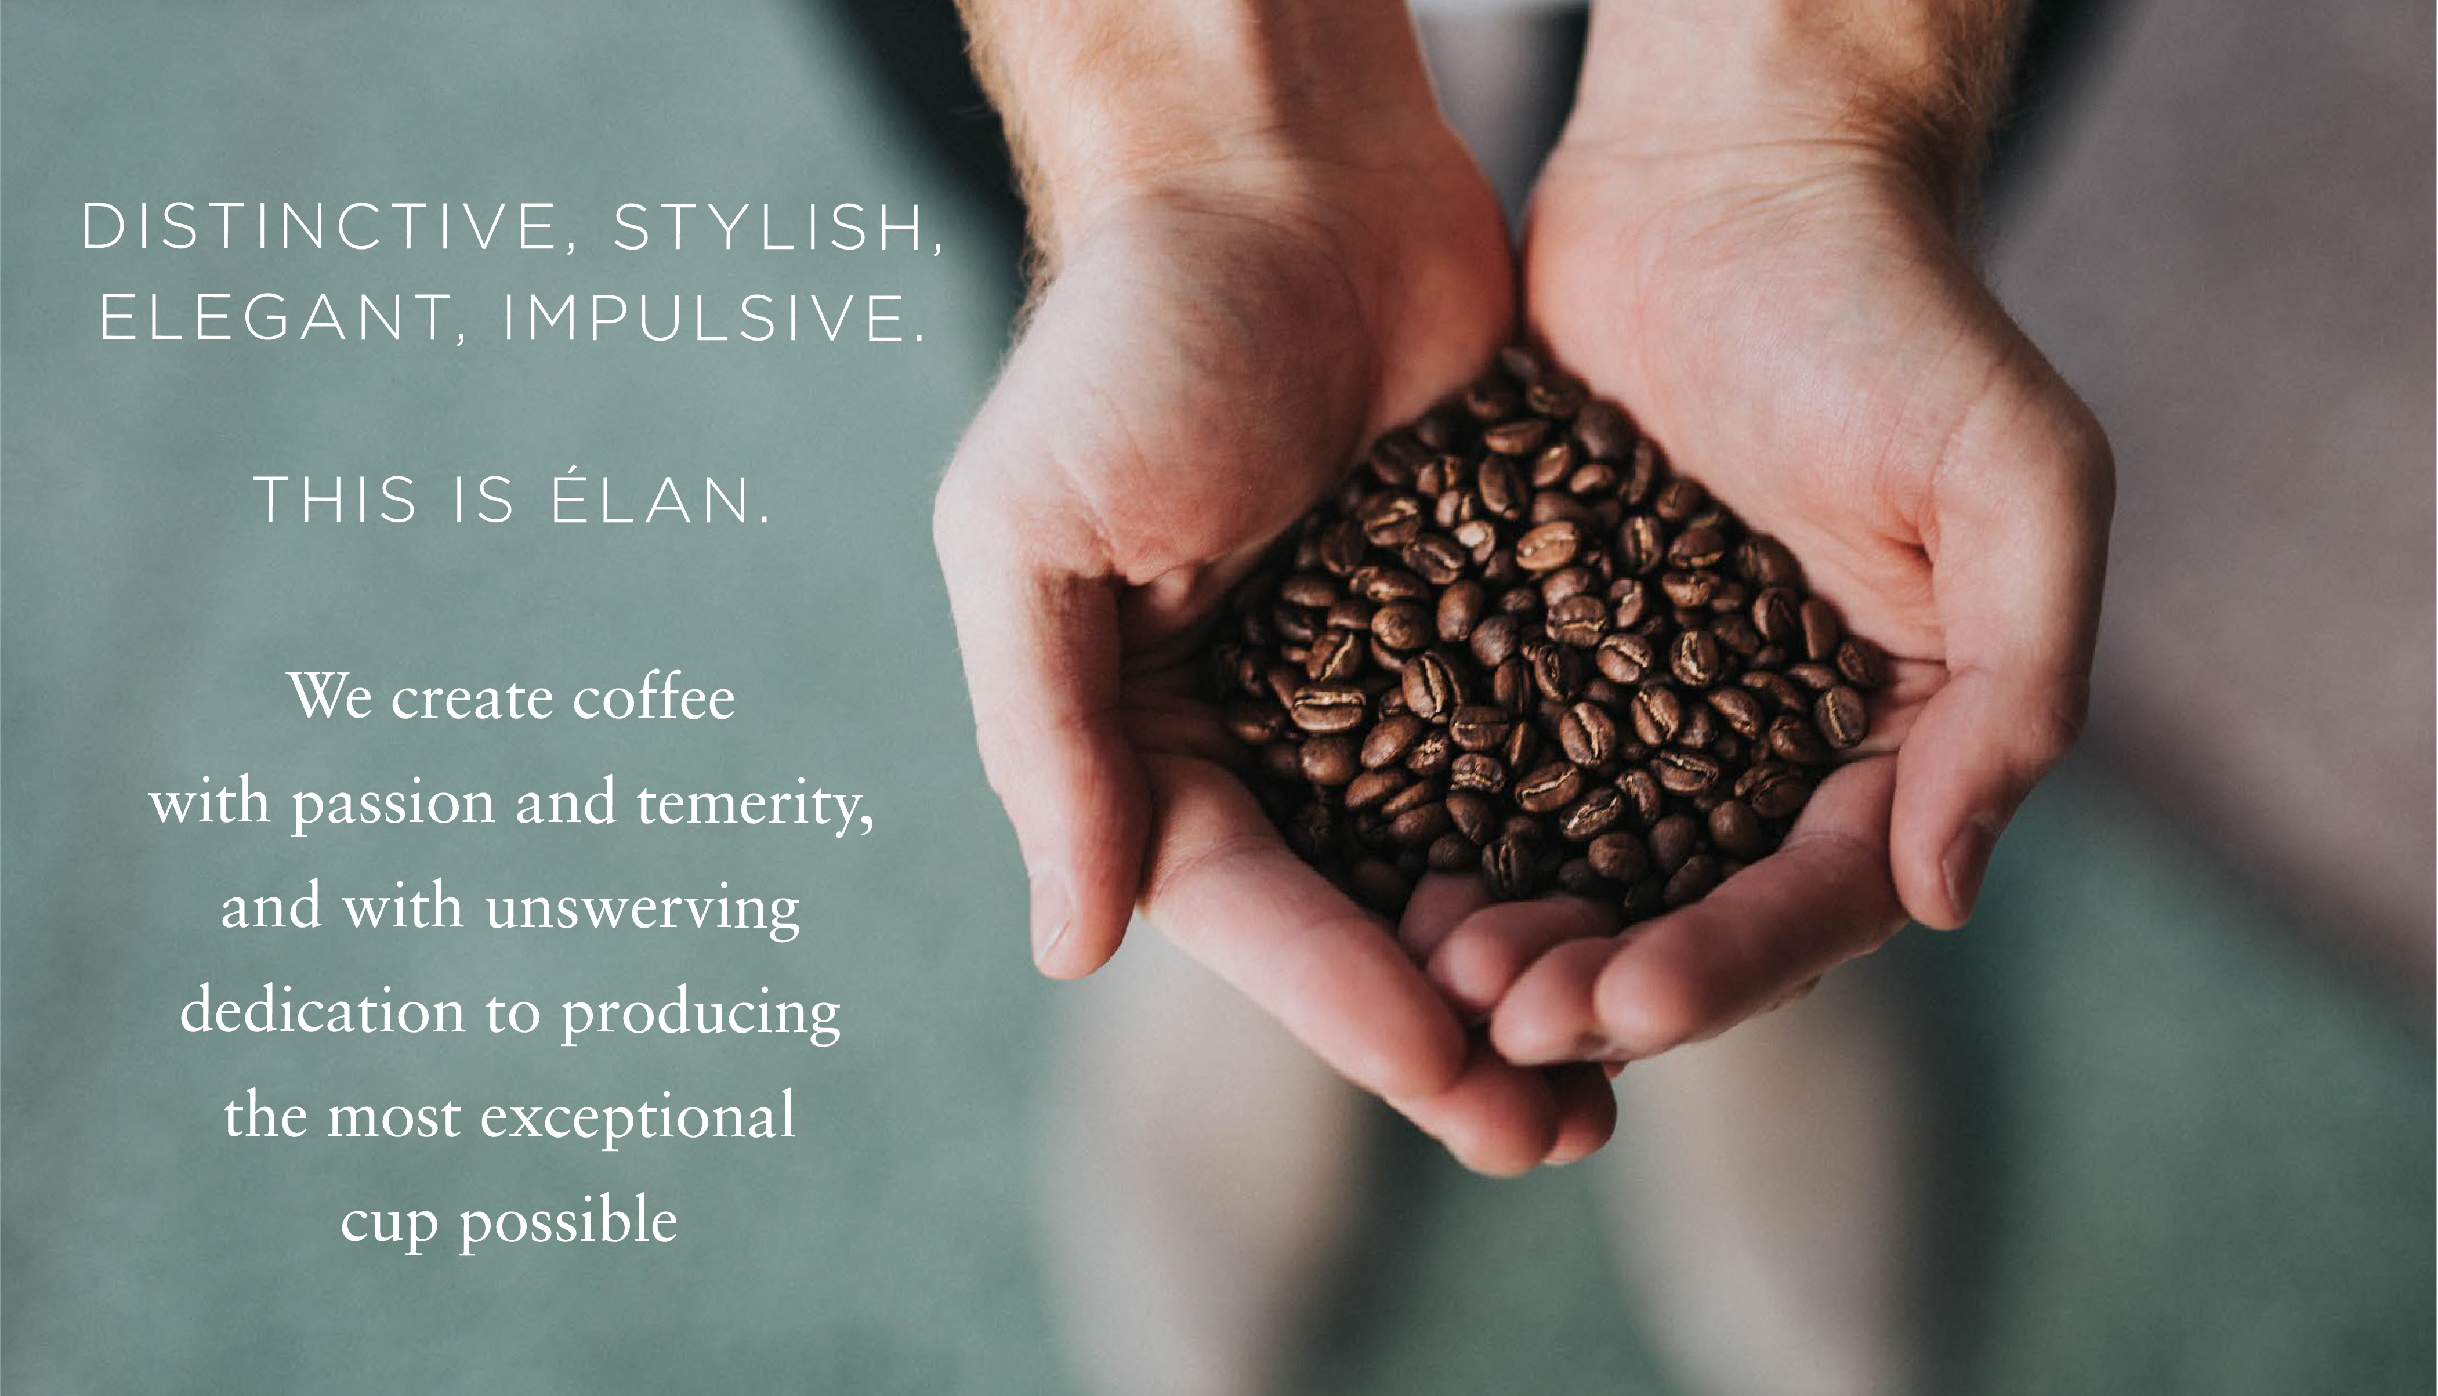 Text explaining the naming of Elan, and a man's hands holding coffee beans